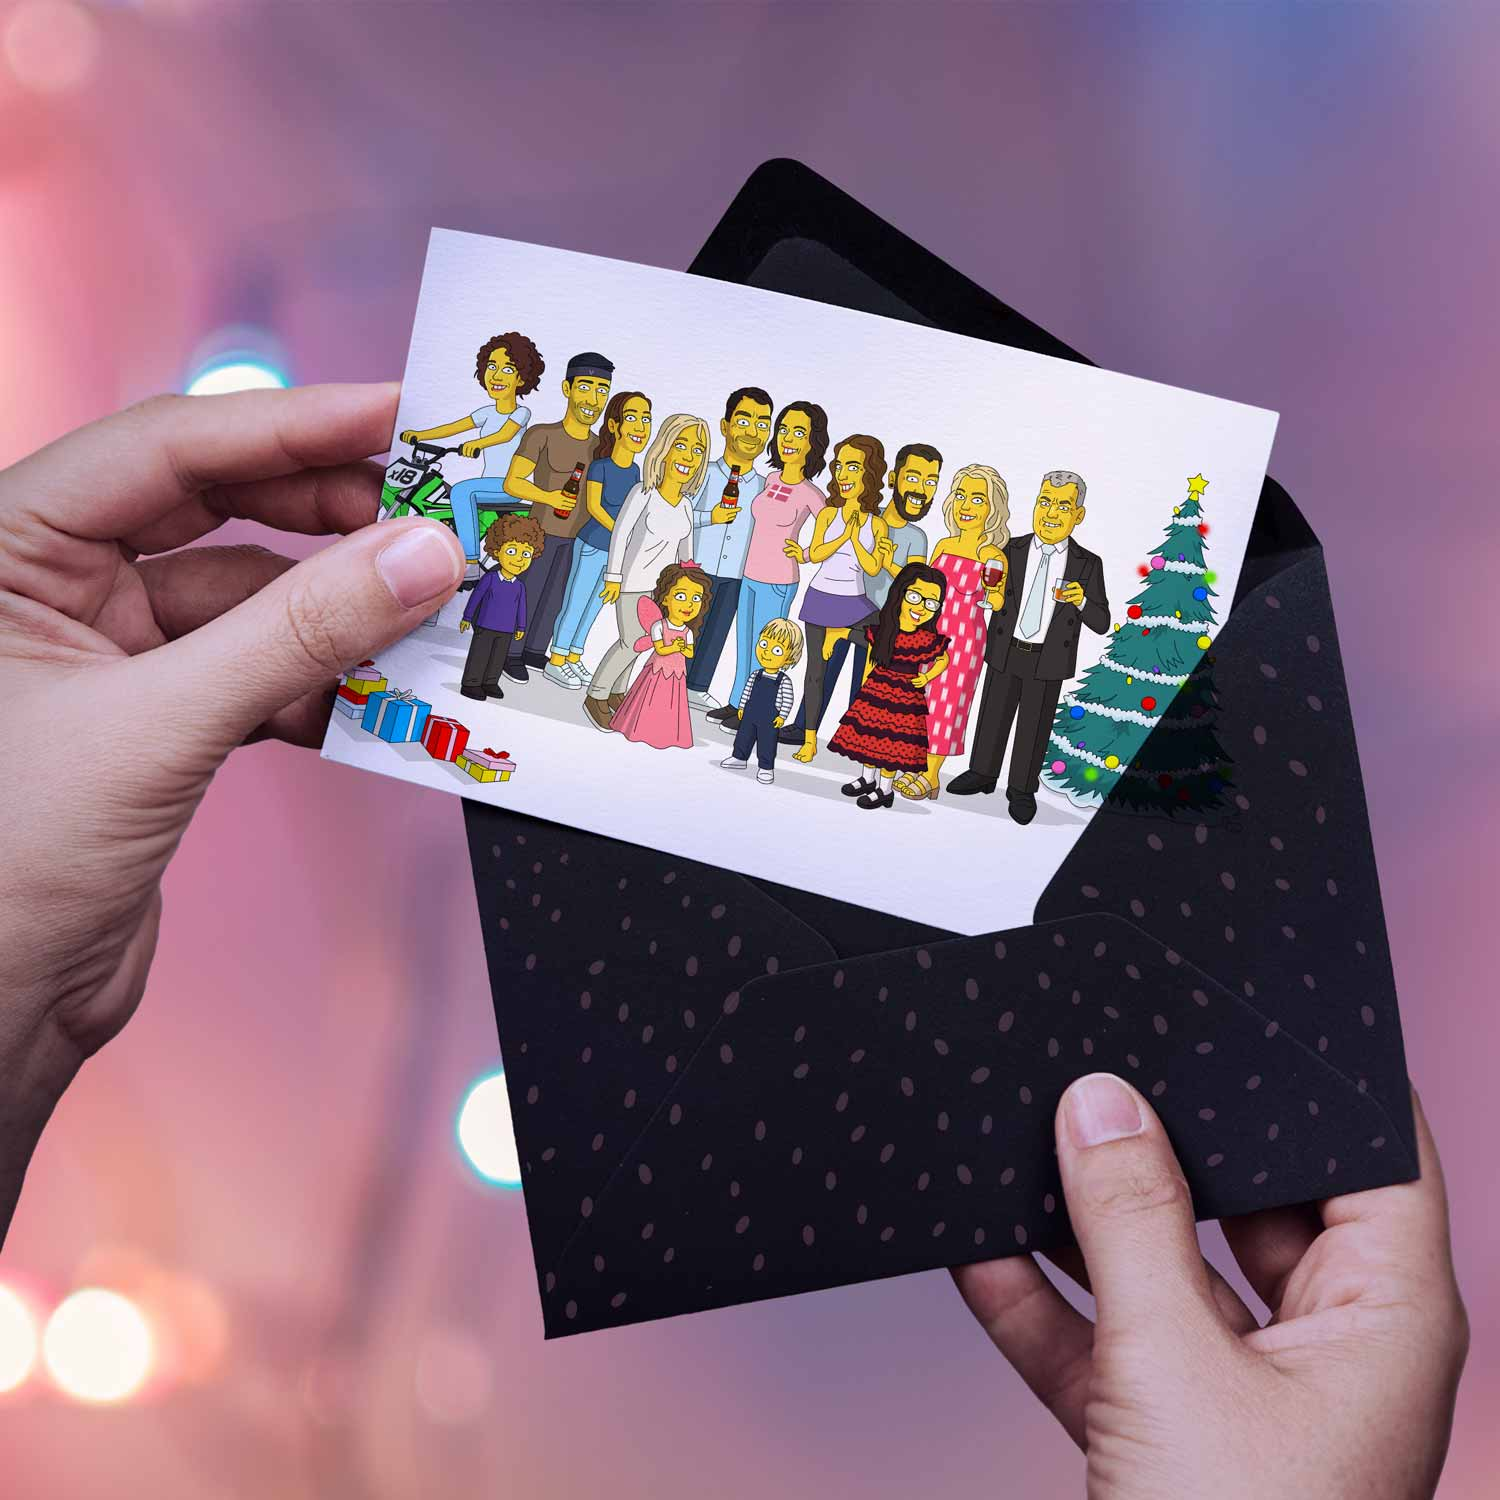 In the picture you can see a polaroid background and woman's hands holding an open envelope with a beautiful postcard in it. The postcard contains a portrait of a big family. They were drawn as Simpsons characters. All looking happy and being in a festive mode.